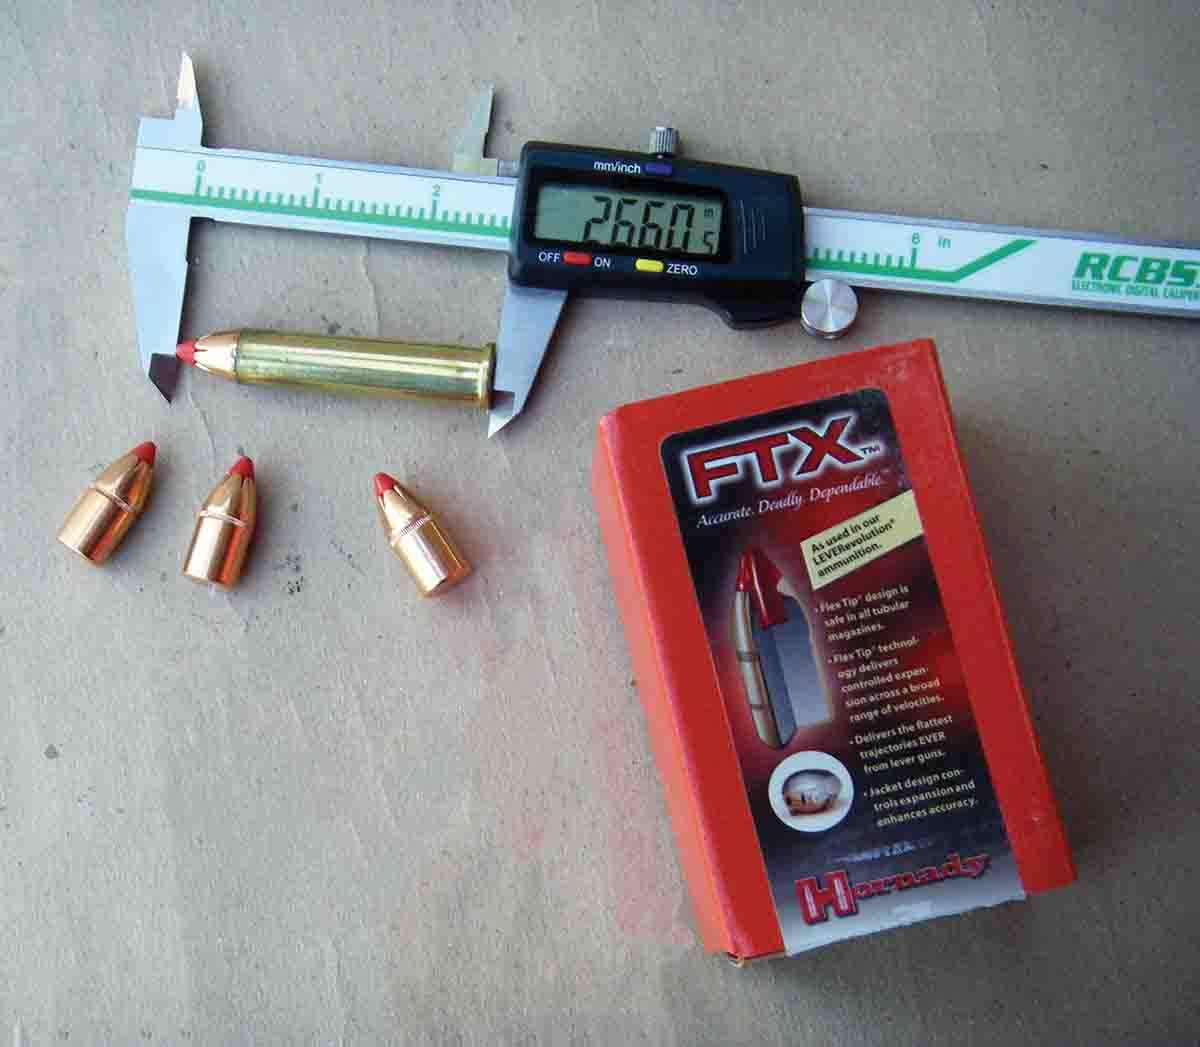 When handloading for lever-action rifles chambered for the .45-70, cases will generally need to be trimmed to 2.040 inches to accommodate the longer nose length of the Hornady 325-grain FTX bullet. However, some rifles might allow cases to be left full length, which results in an overall cartridge length of around 2.660 inches.